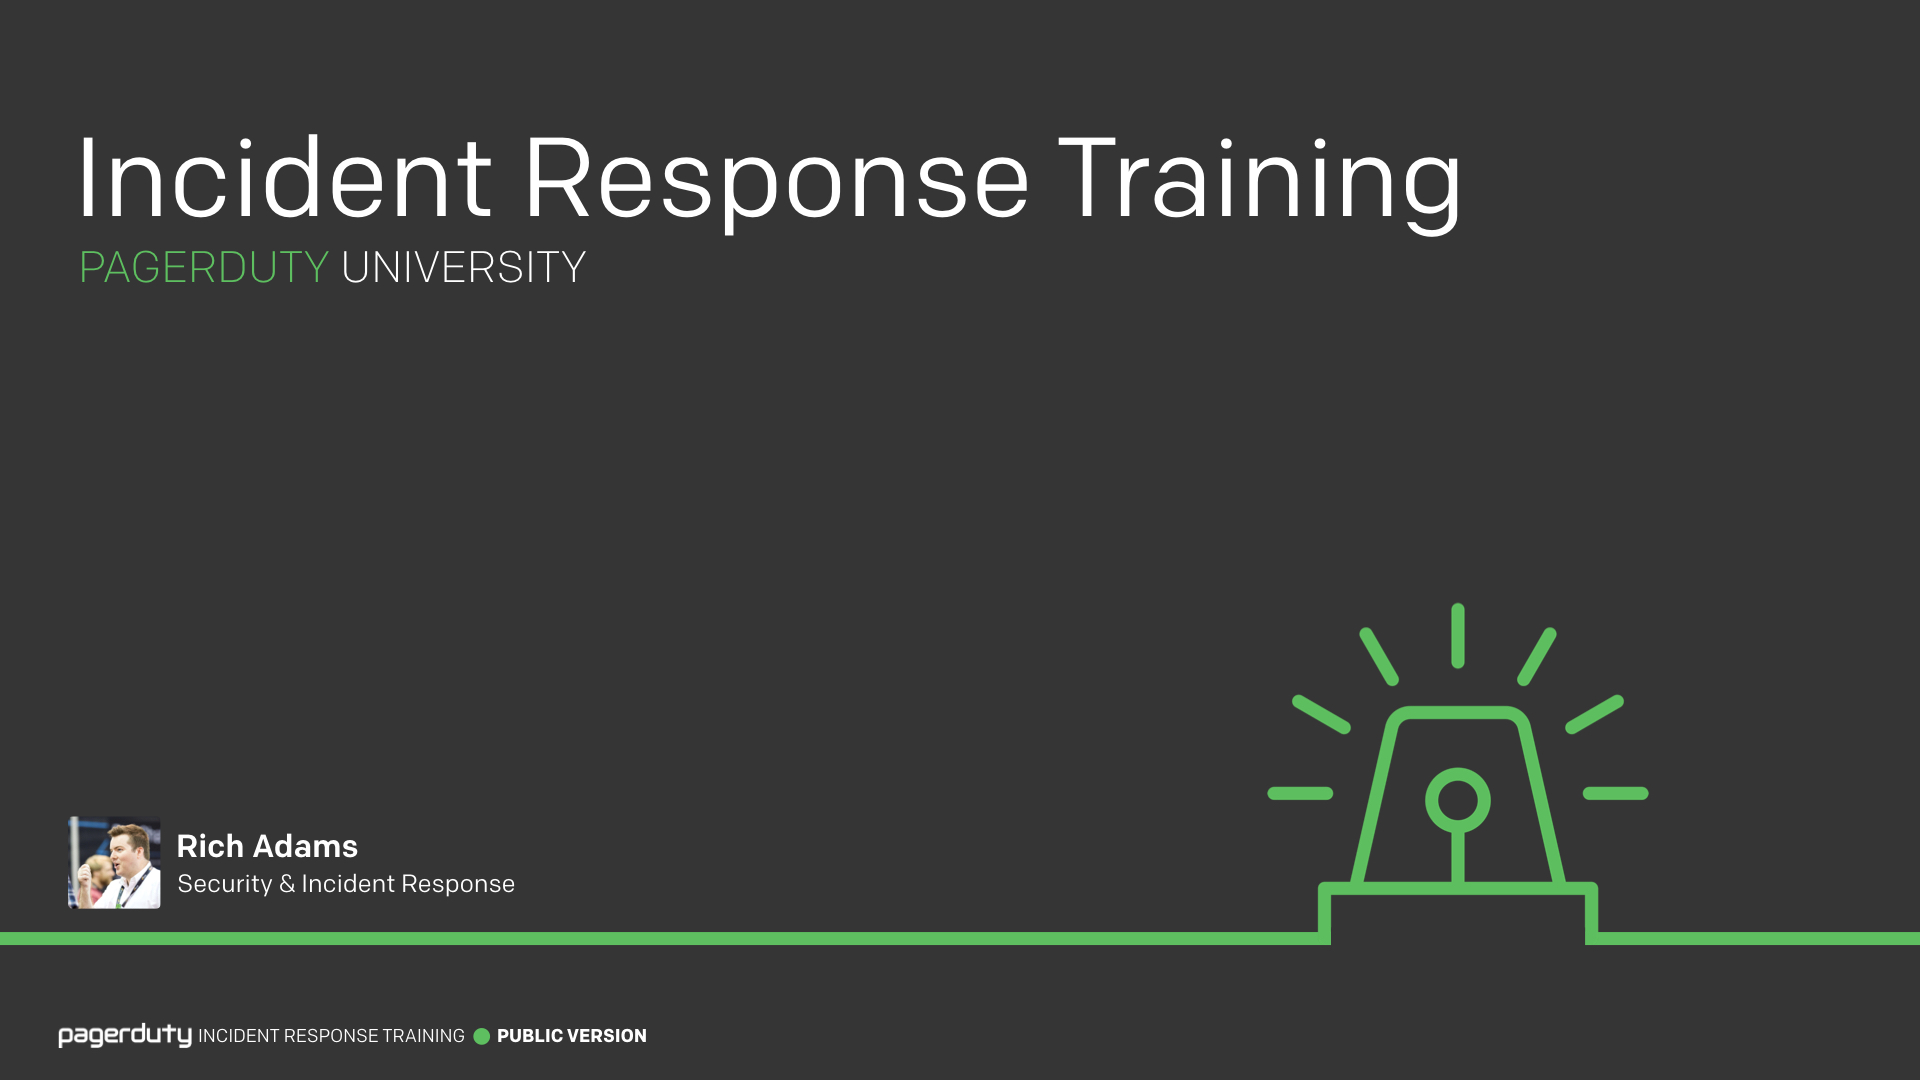 Incident Response Training Pagerduty Incident Response